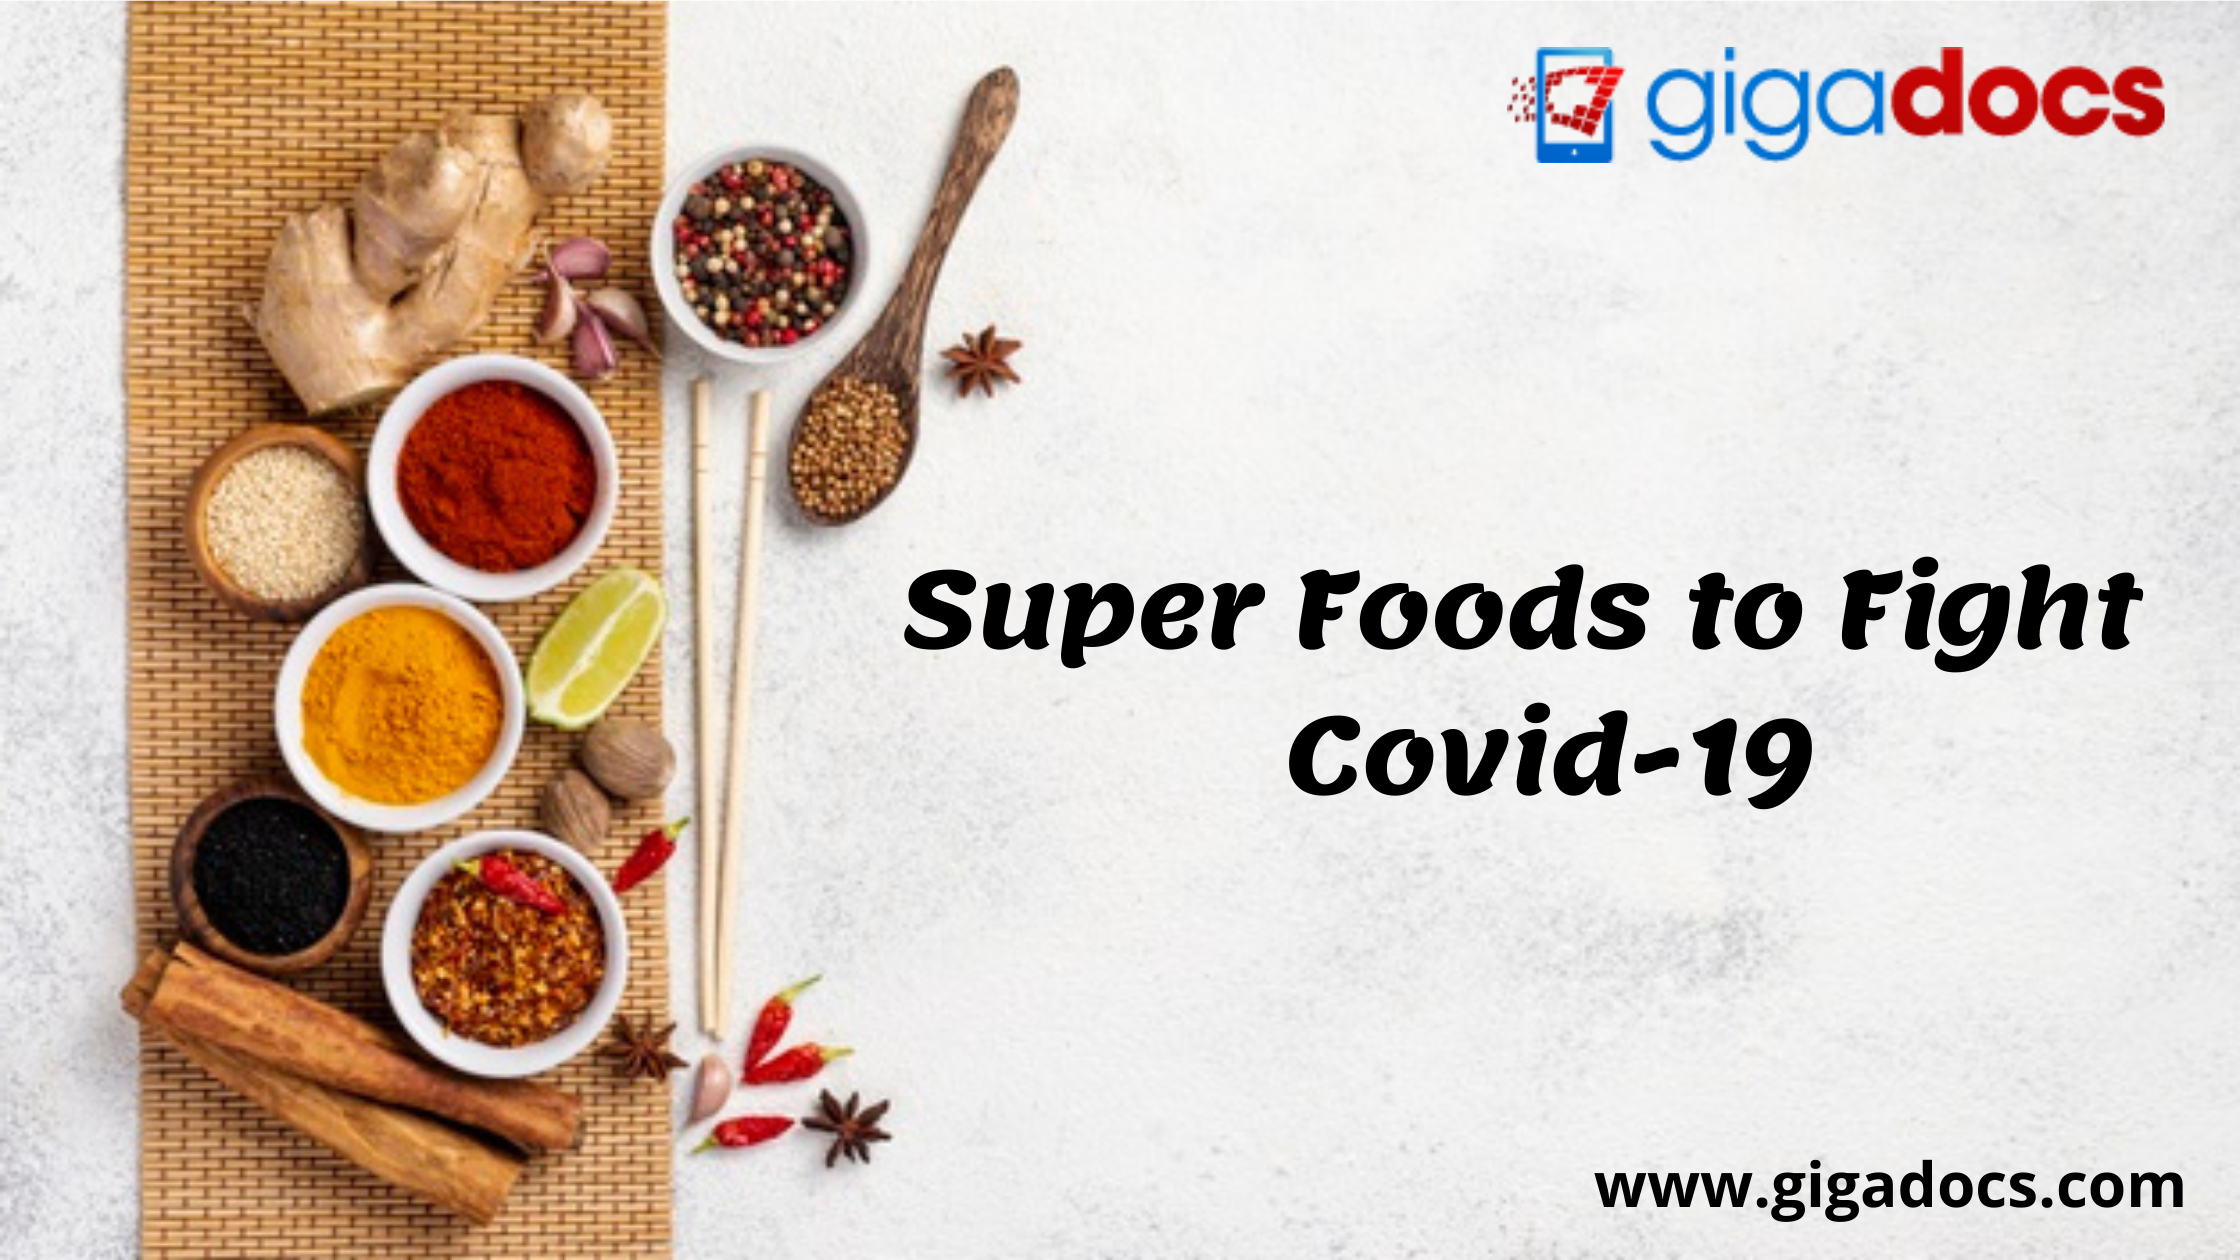 Superfoods to Fight Covid-19: Excess of Vitamin D, Vitamin C, Turmeric, Pepper, Spices can be Fatal